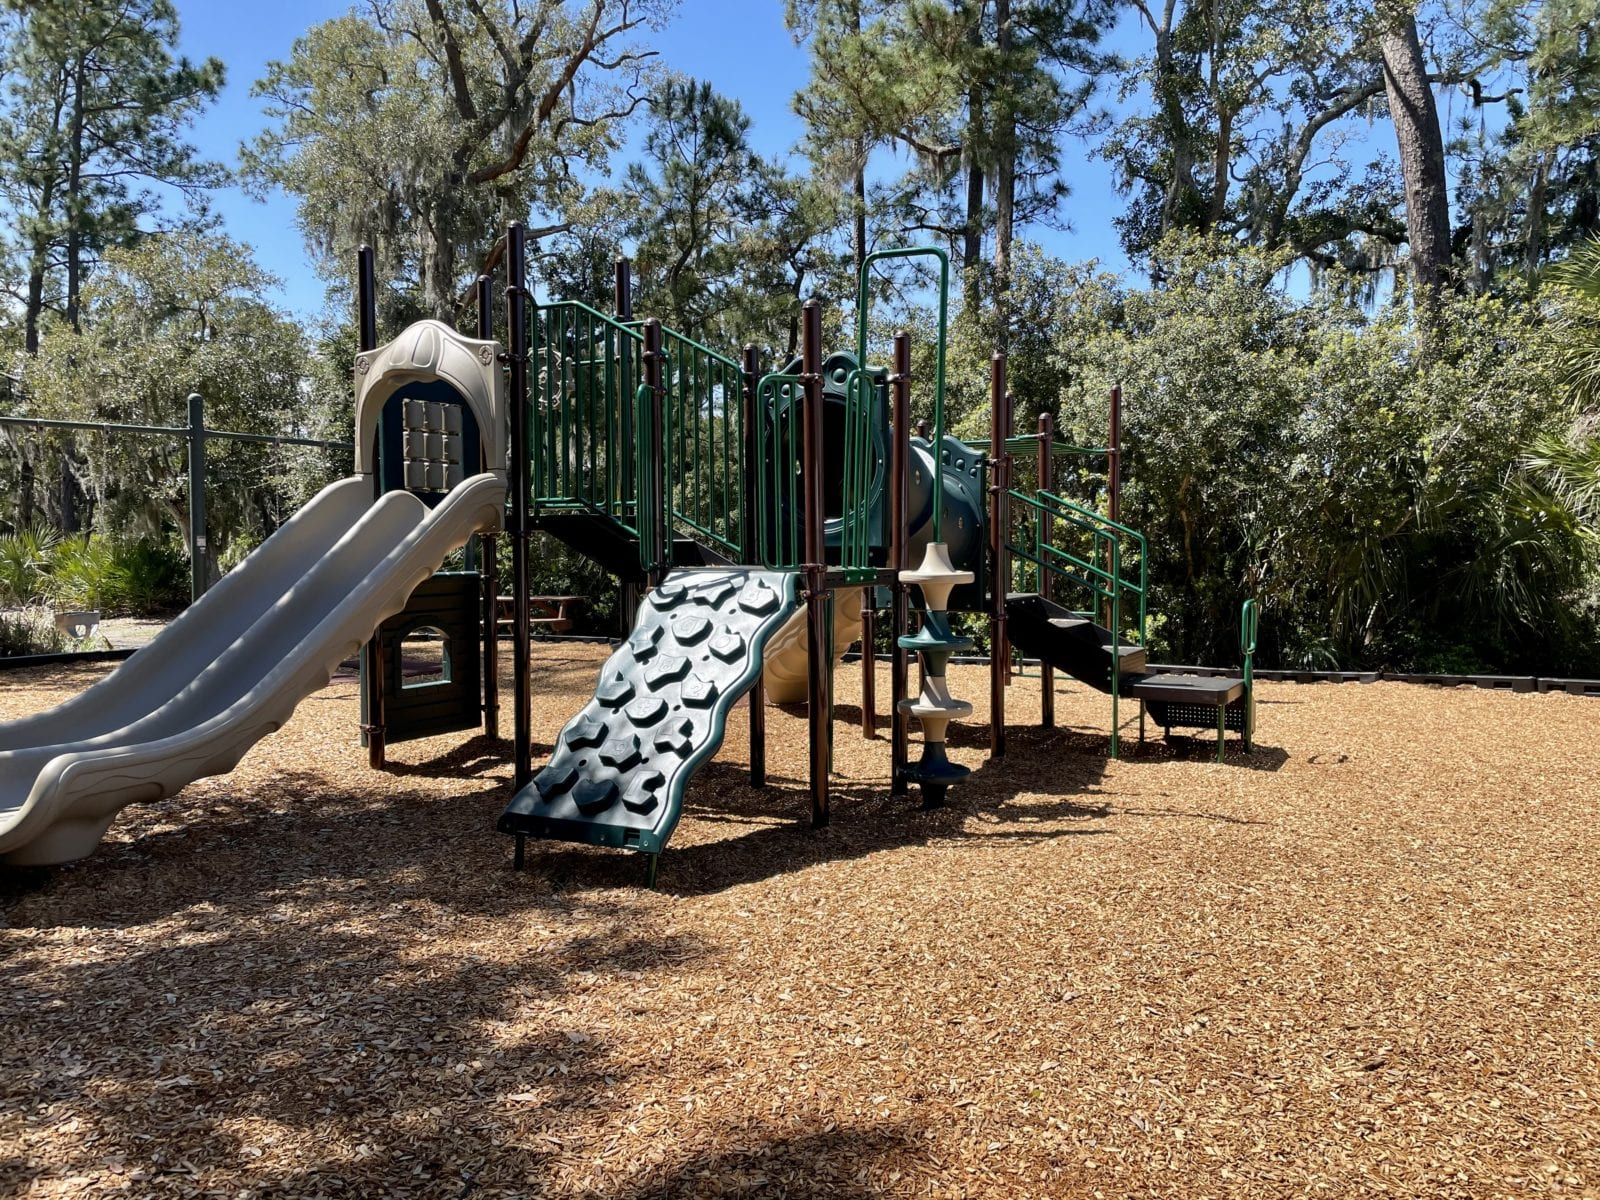 Playground at South Harbor